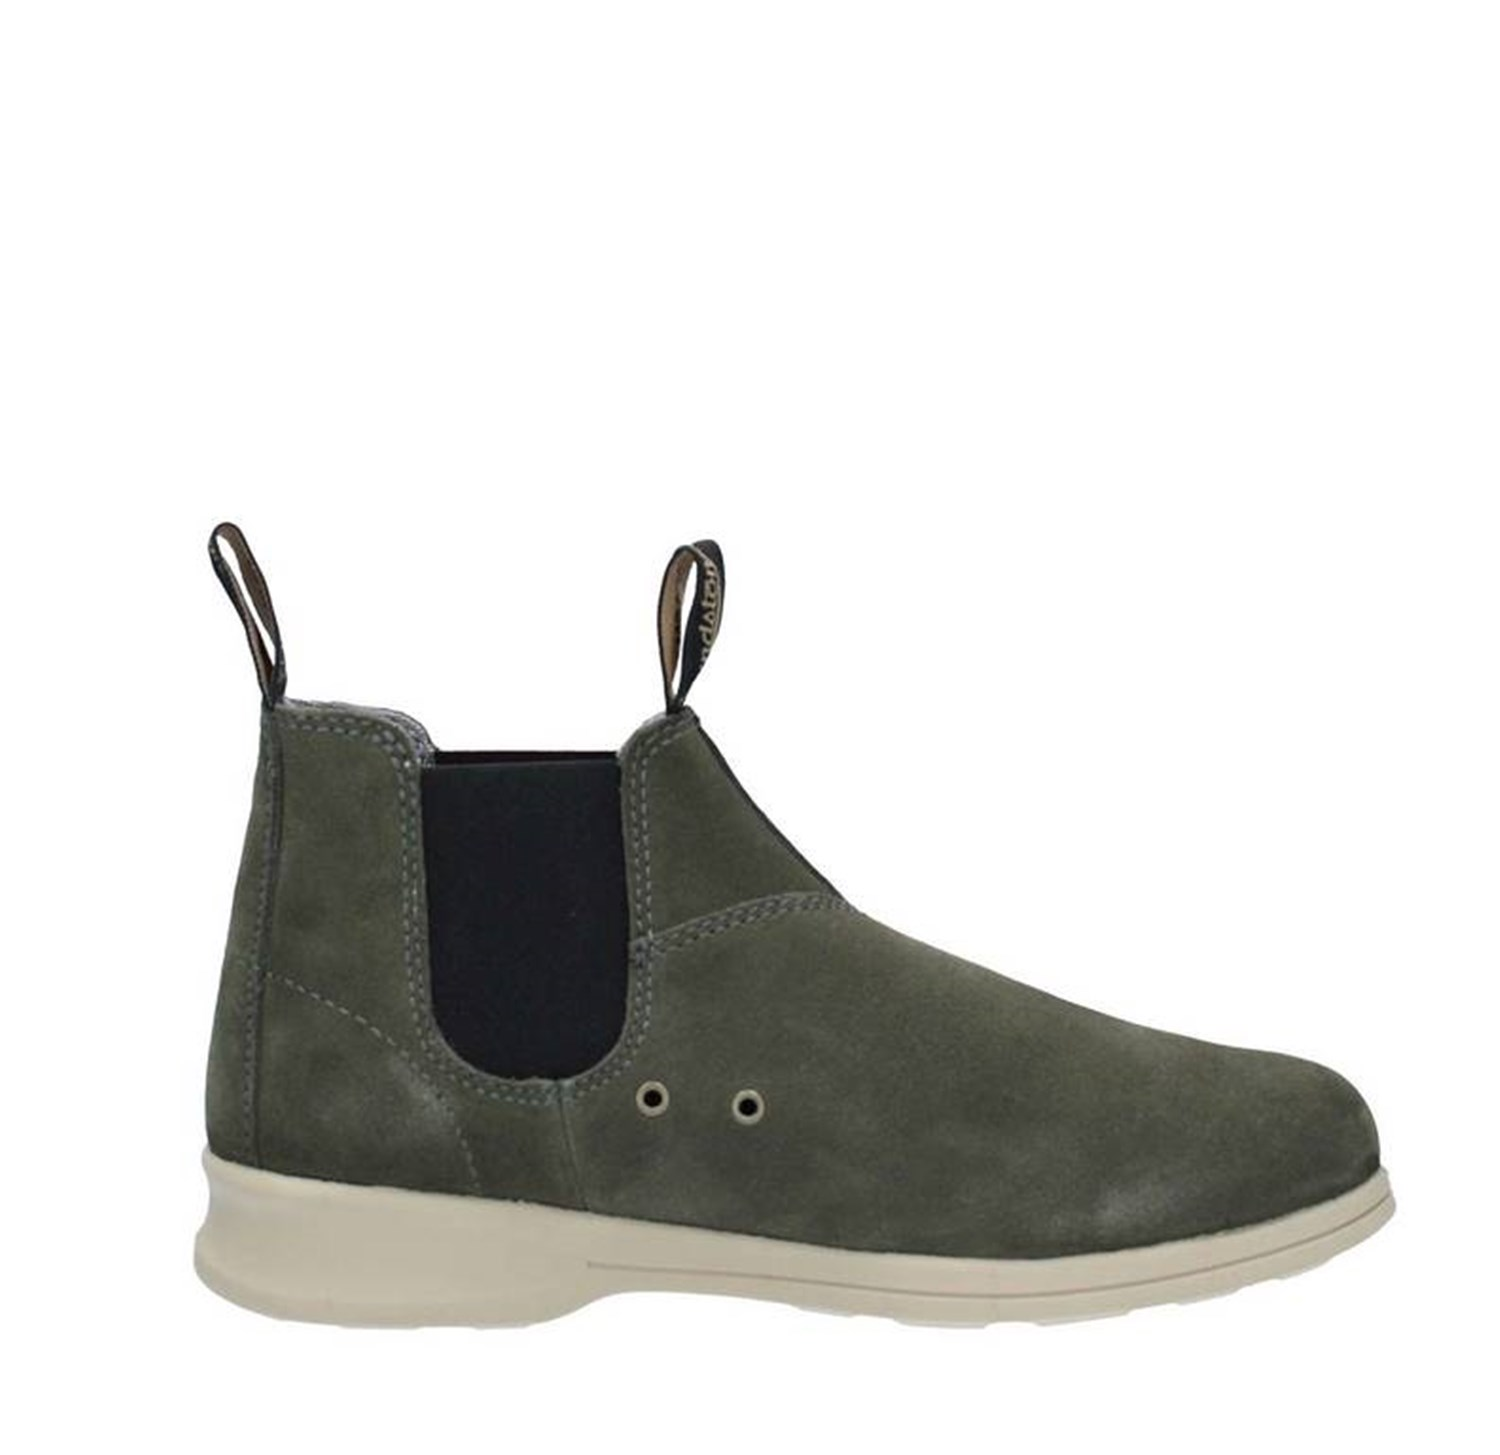 Blundstone Shoes Man boots GREEN 1361